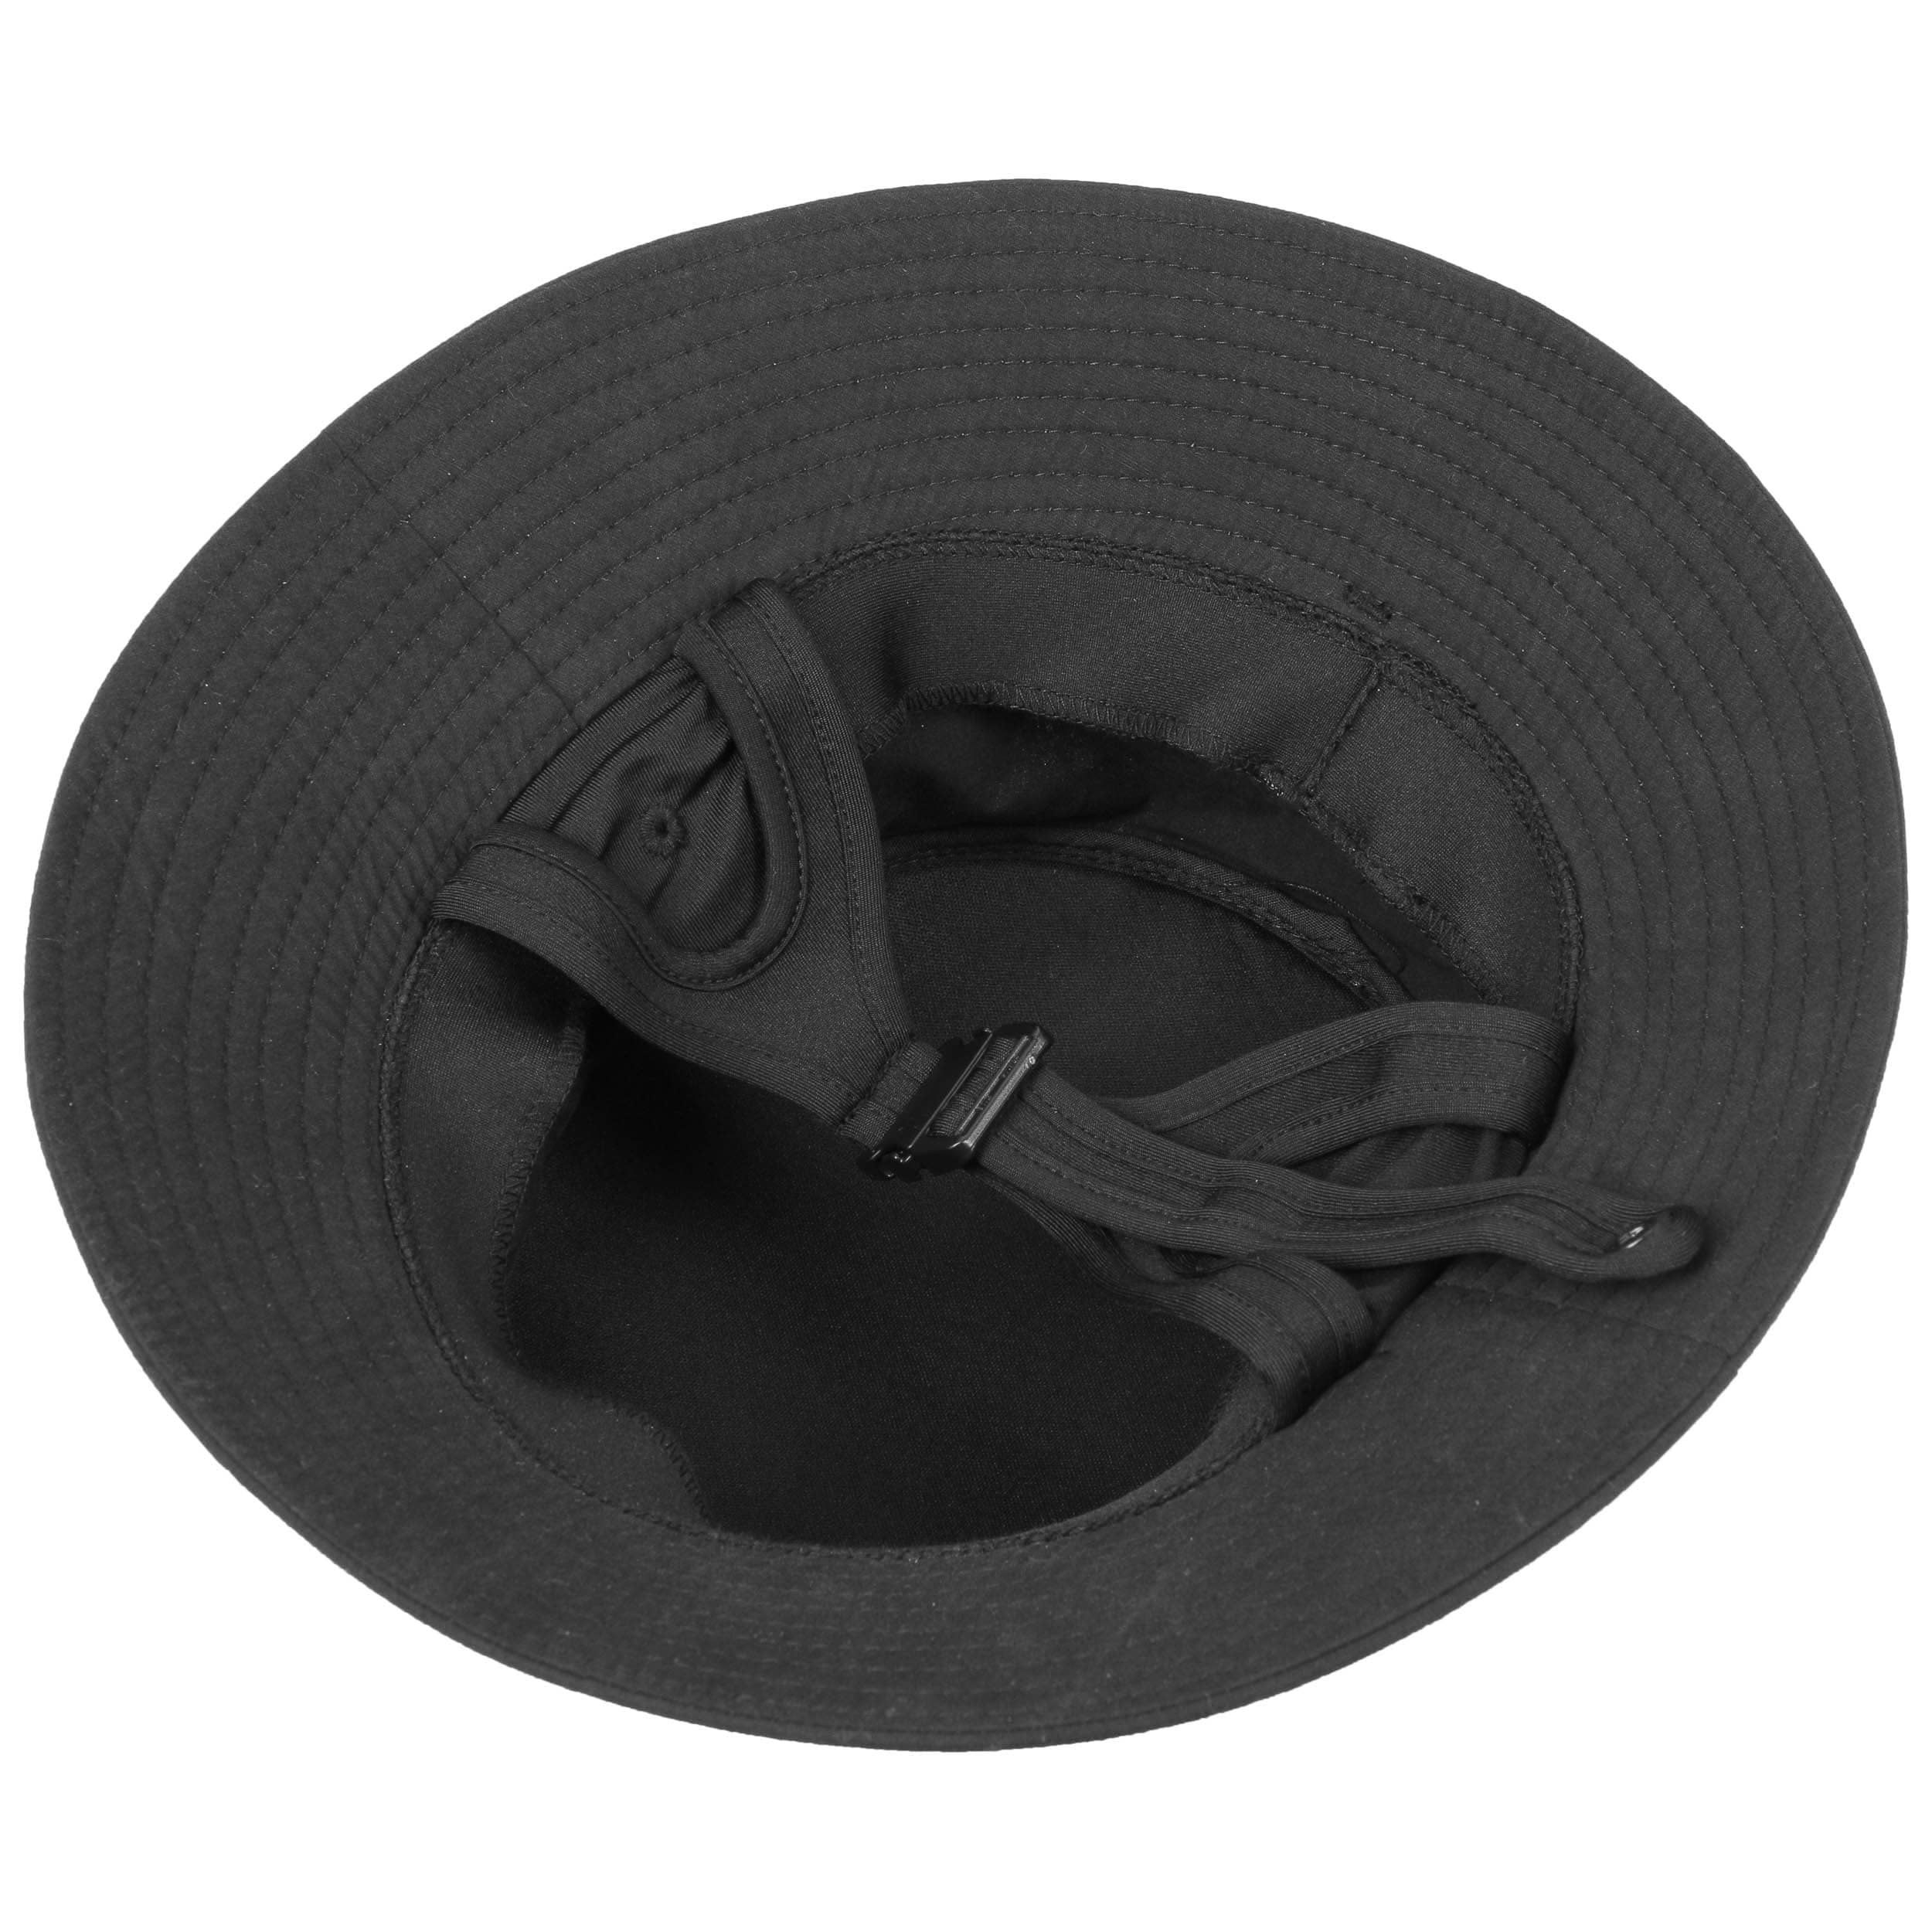 c6e32823d Wetty Surf Hat by Rip Curl